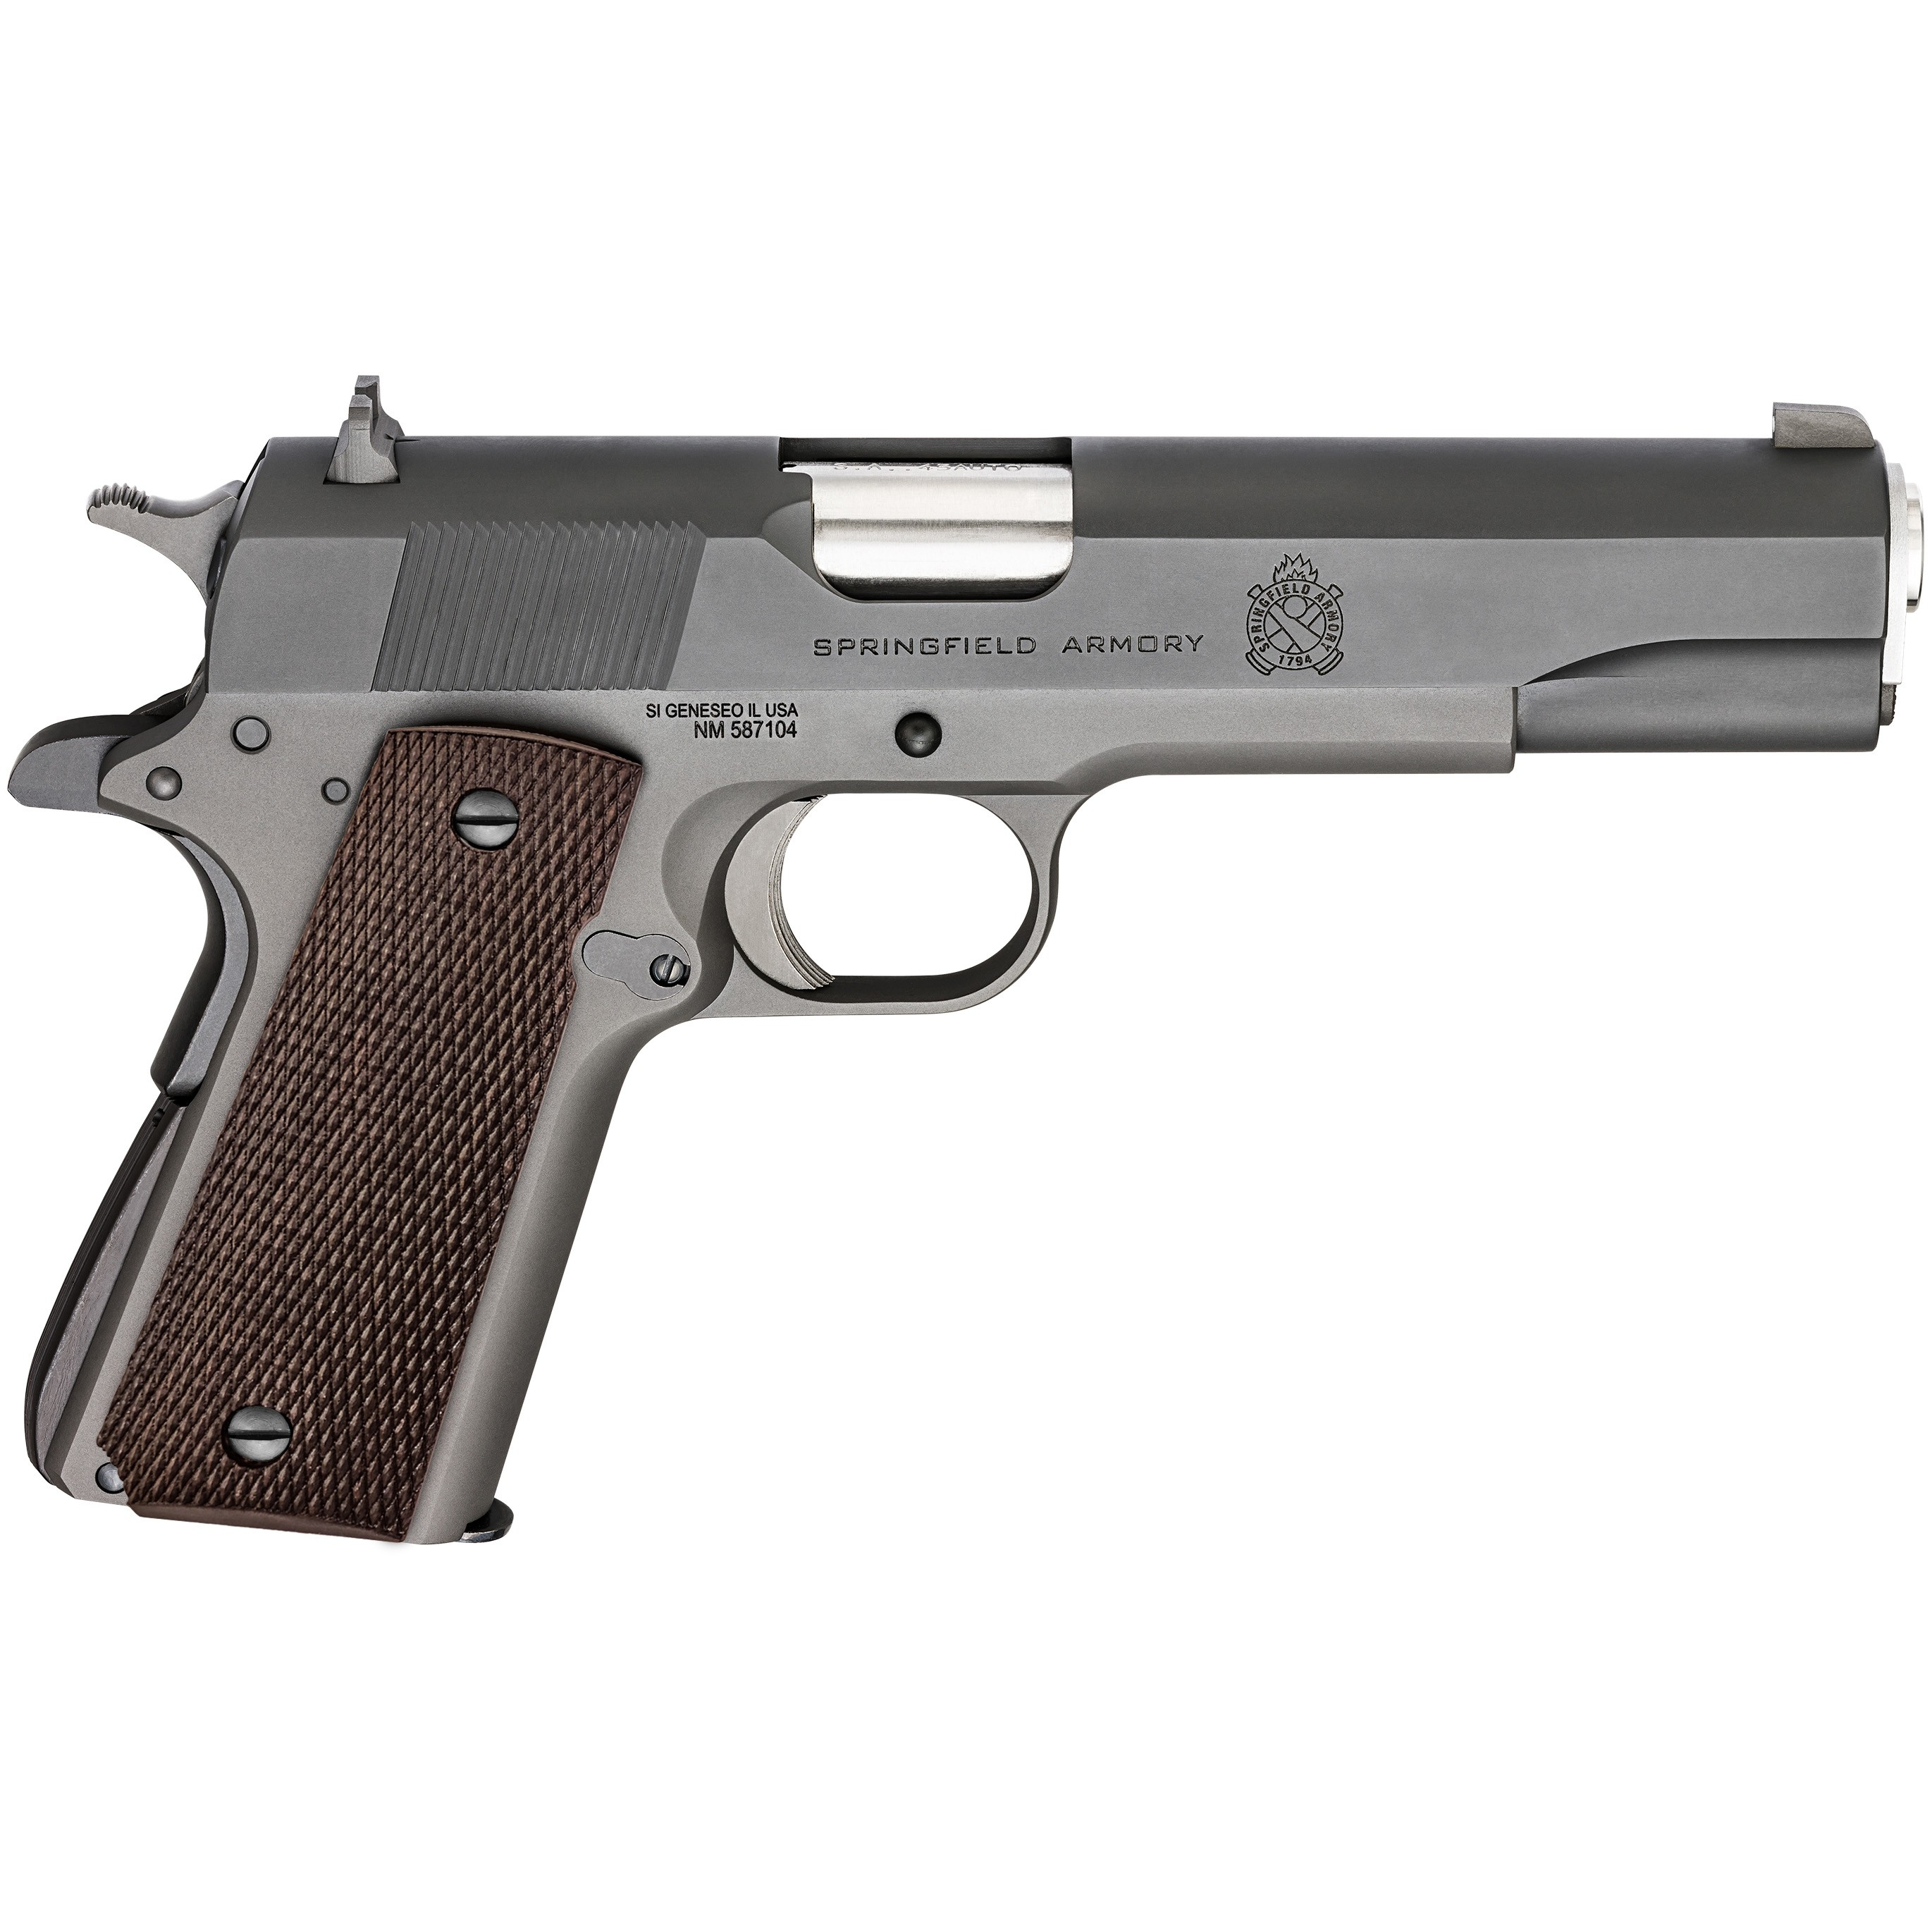 Springfield 1911 Mil-Spec - Defend Your Legacy 45 ACP